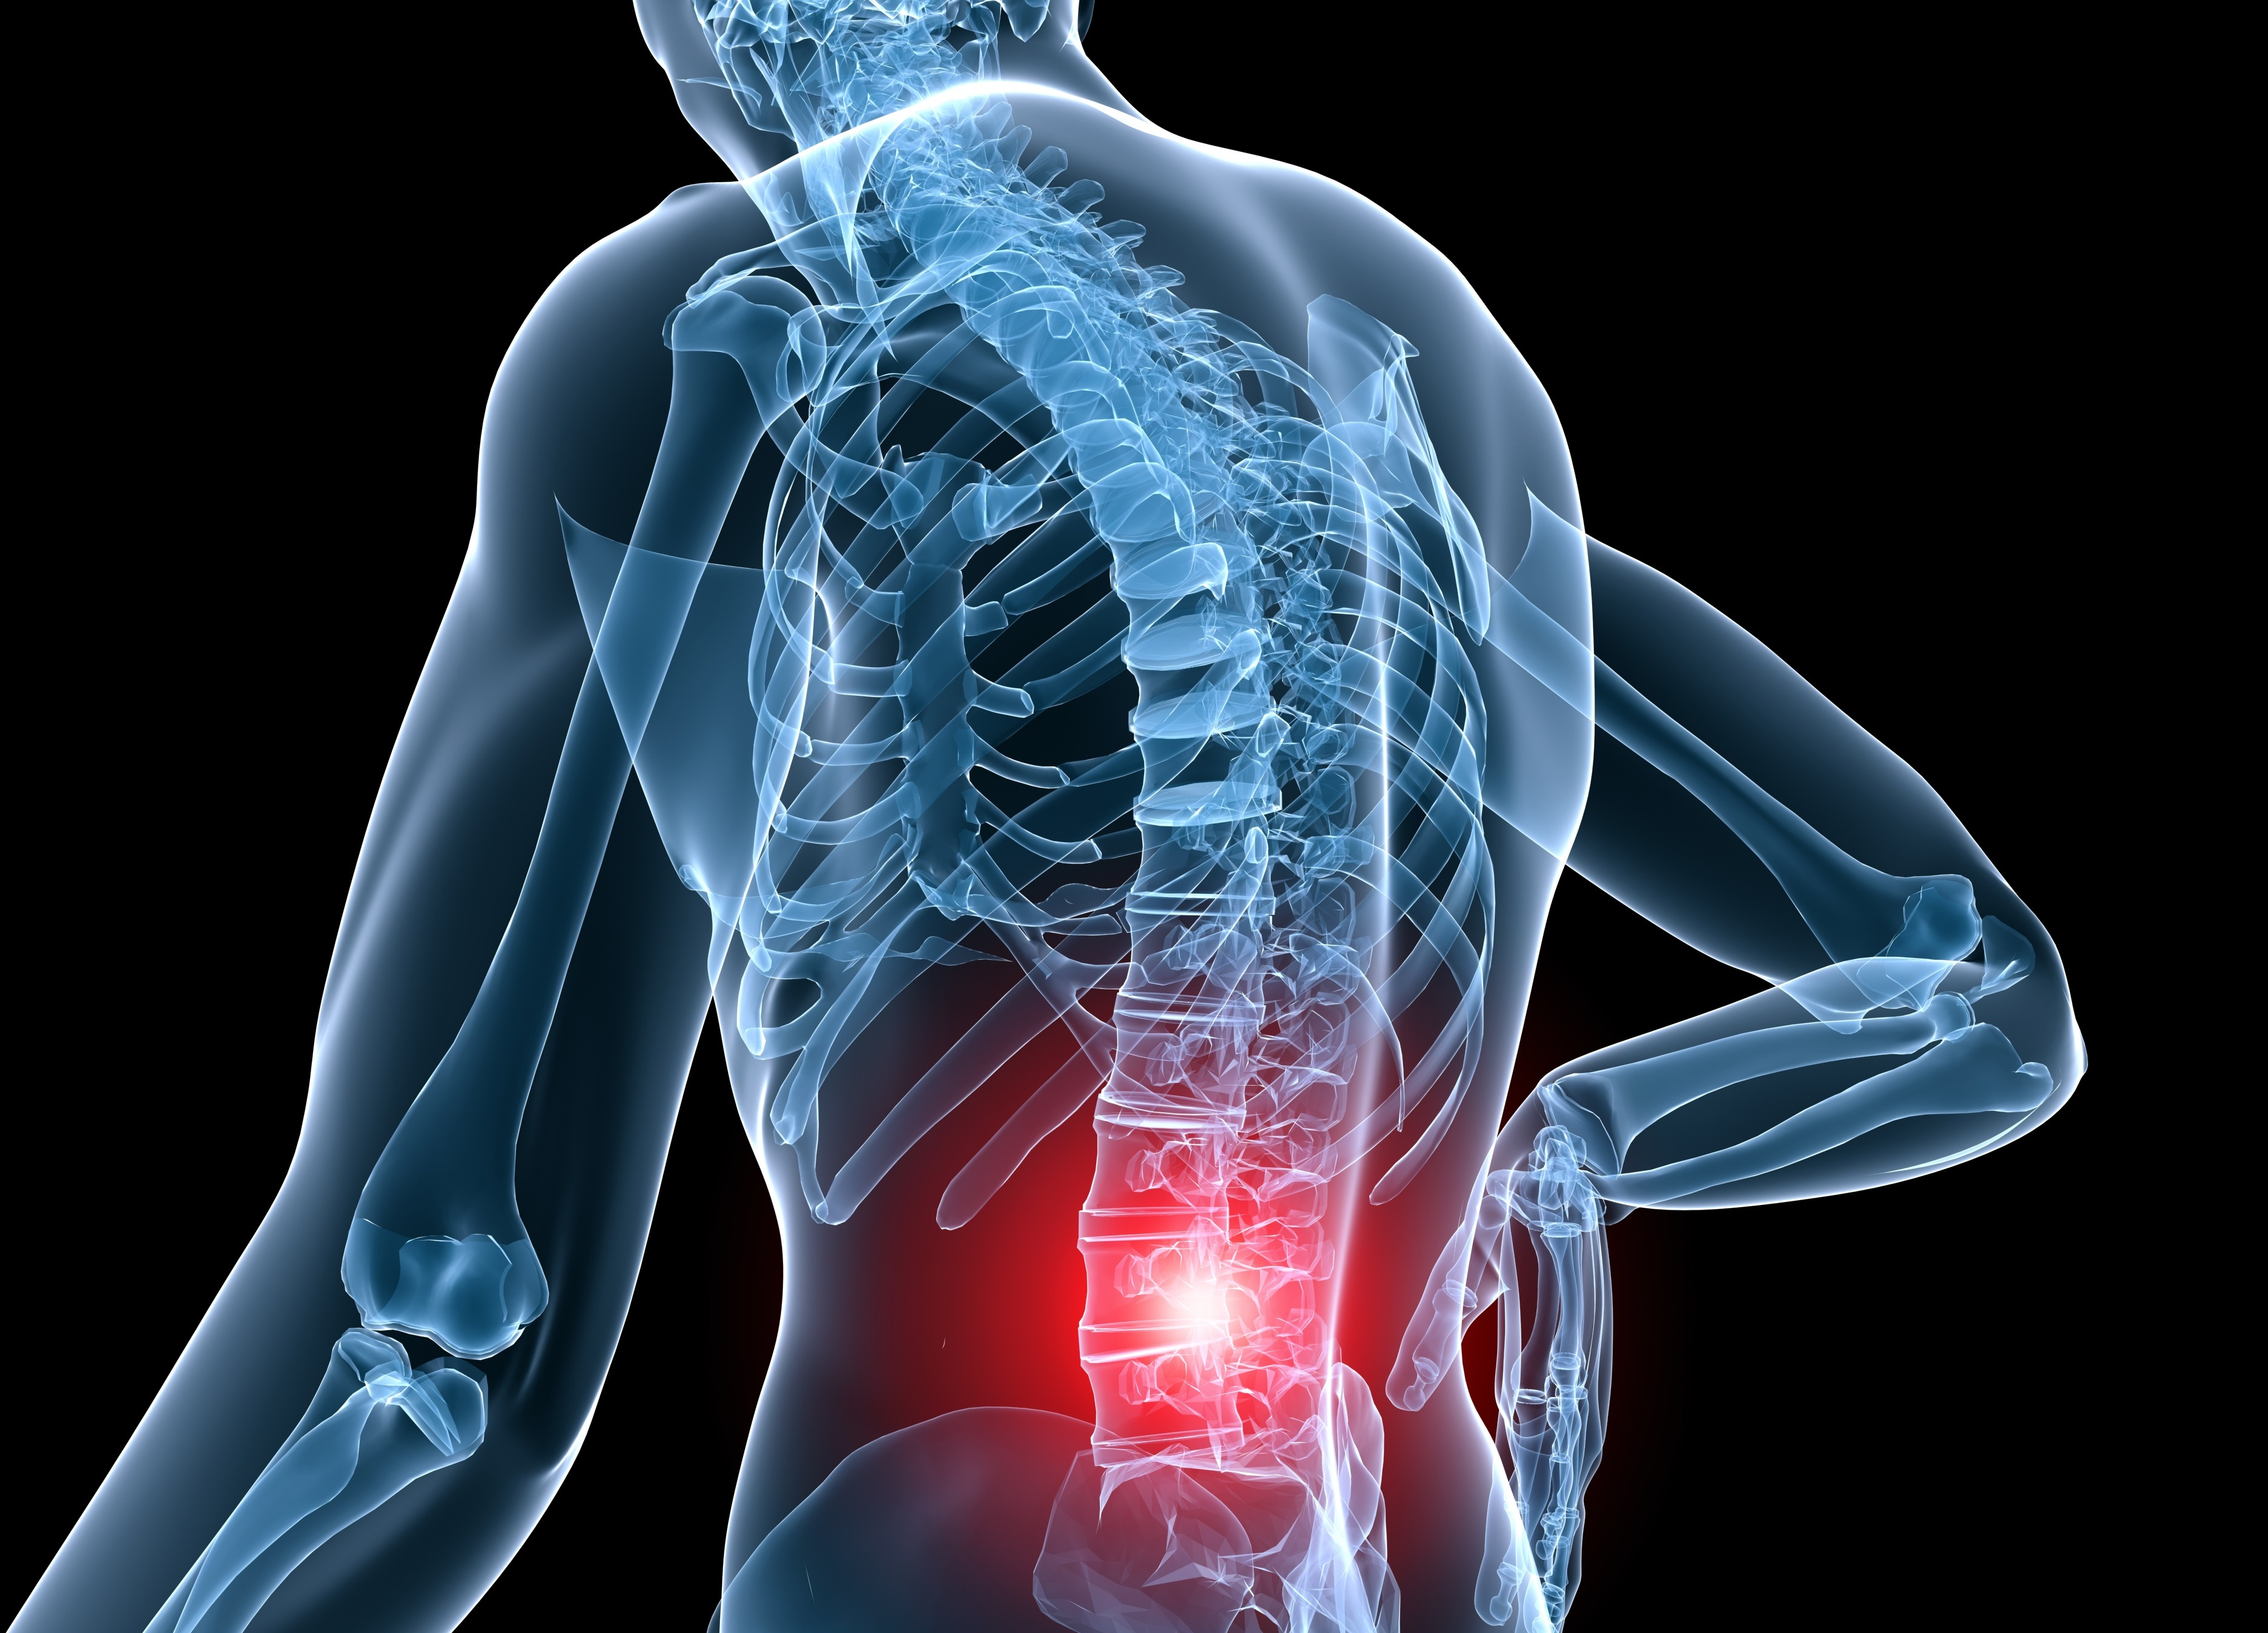 low back pain might begin as acute due to an injury but can become chronic   managing pain appropriately at an early stage can help limit symptoms in  both